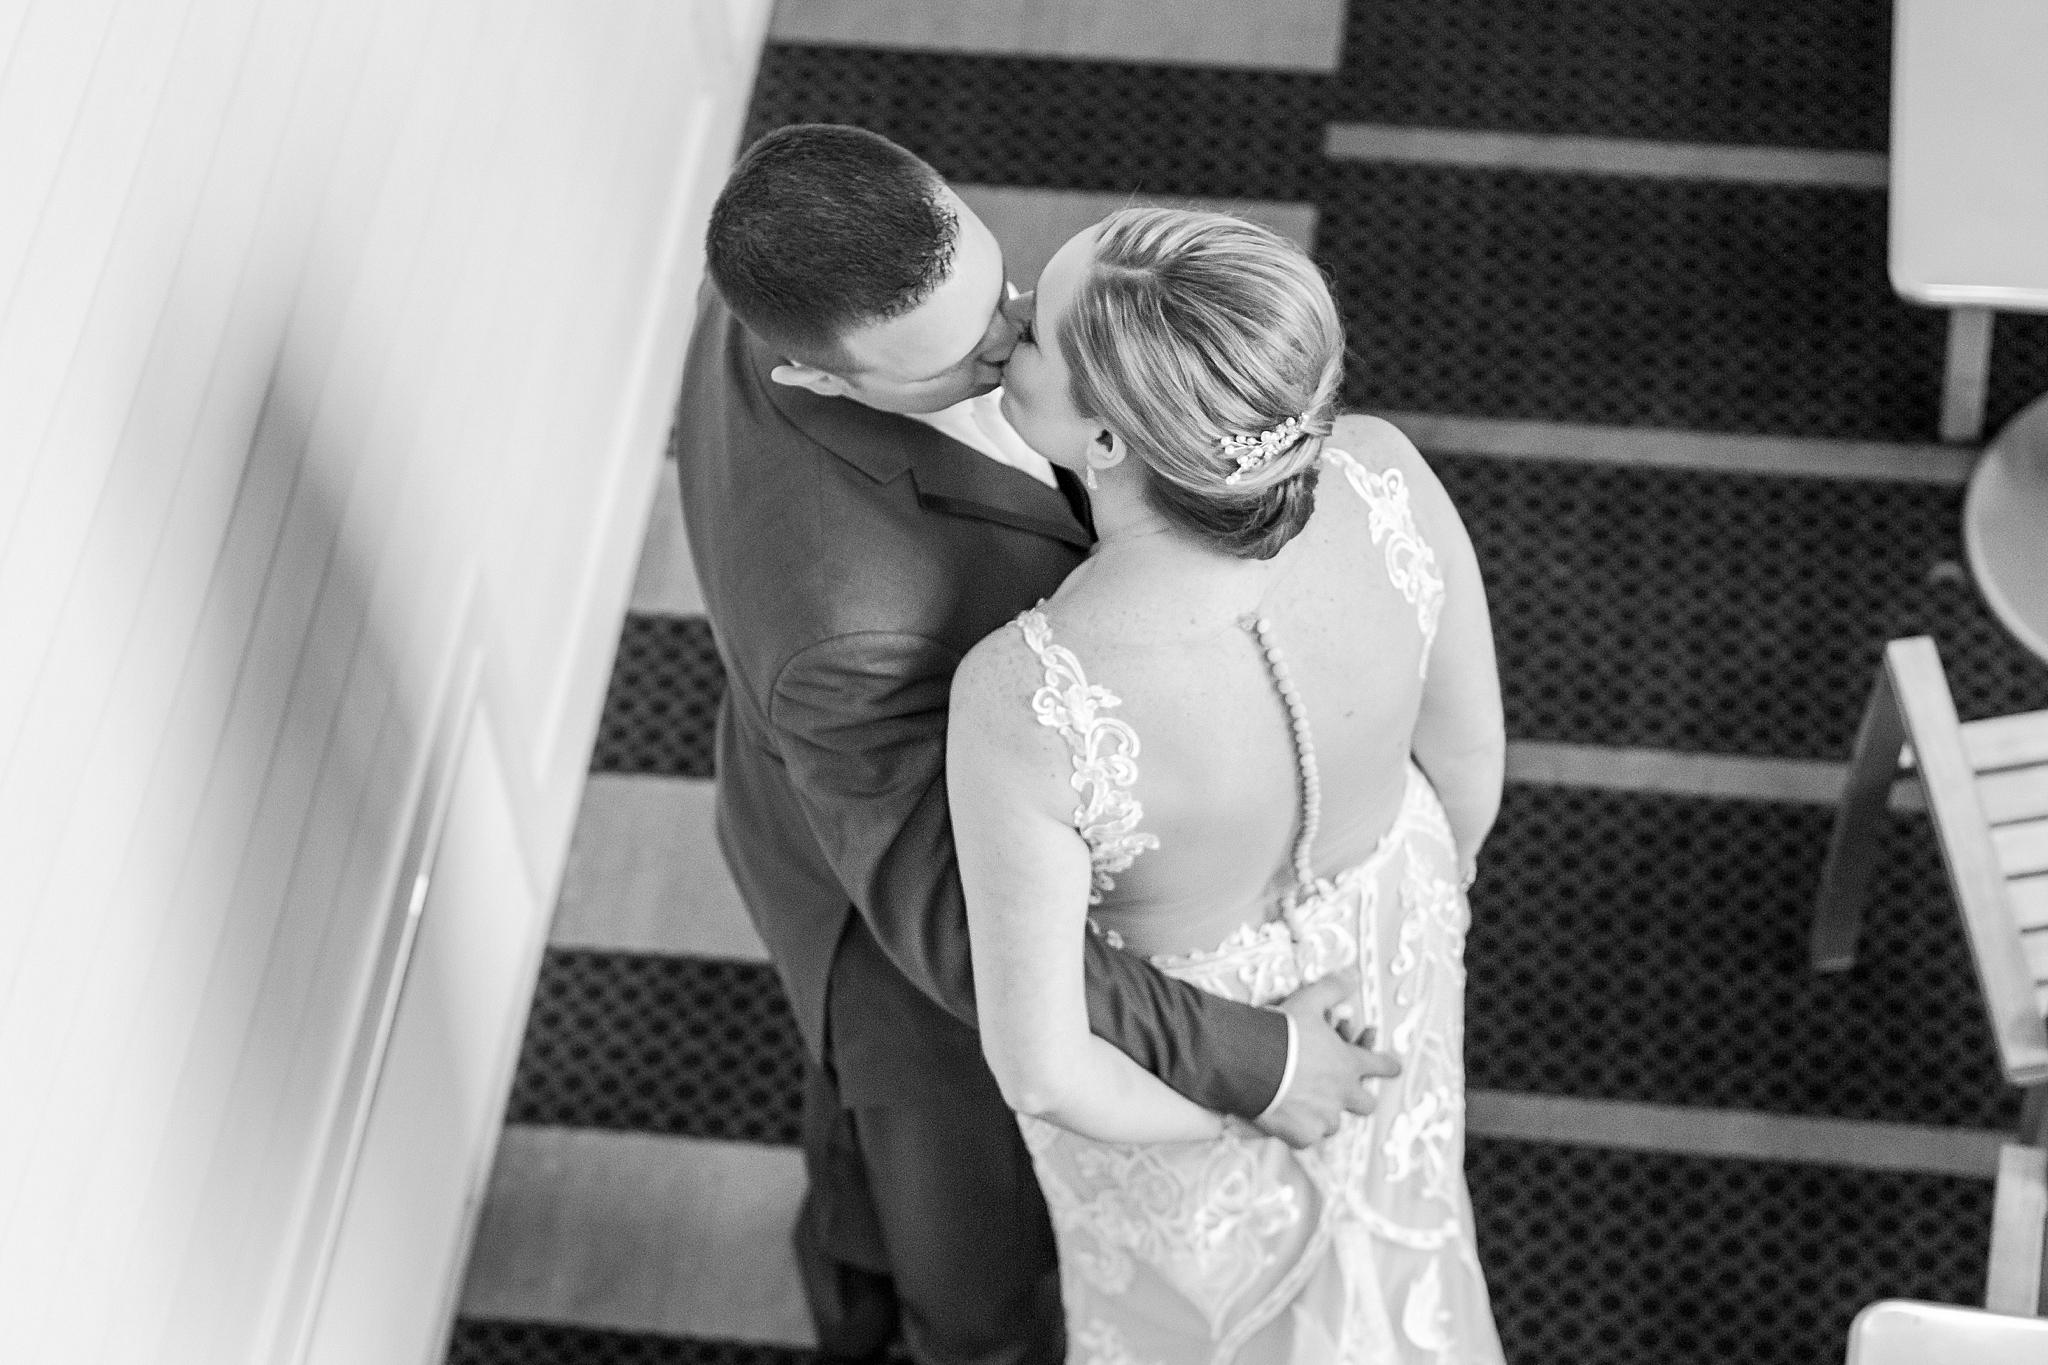 modern-romantic-wedding-photography-at-webers-in-ann-arbor-michigan-by-courtney-carolyn-photography_0055.jpg